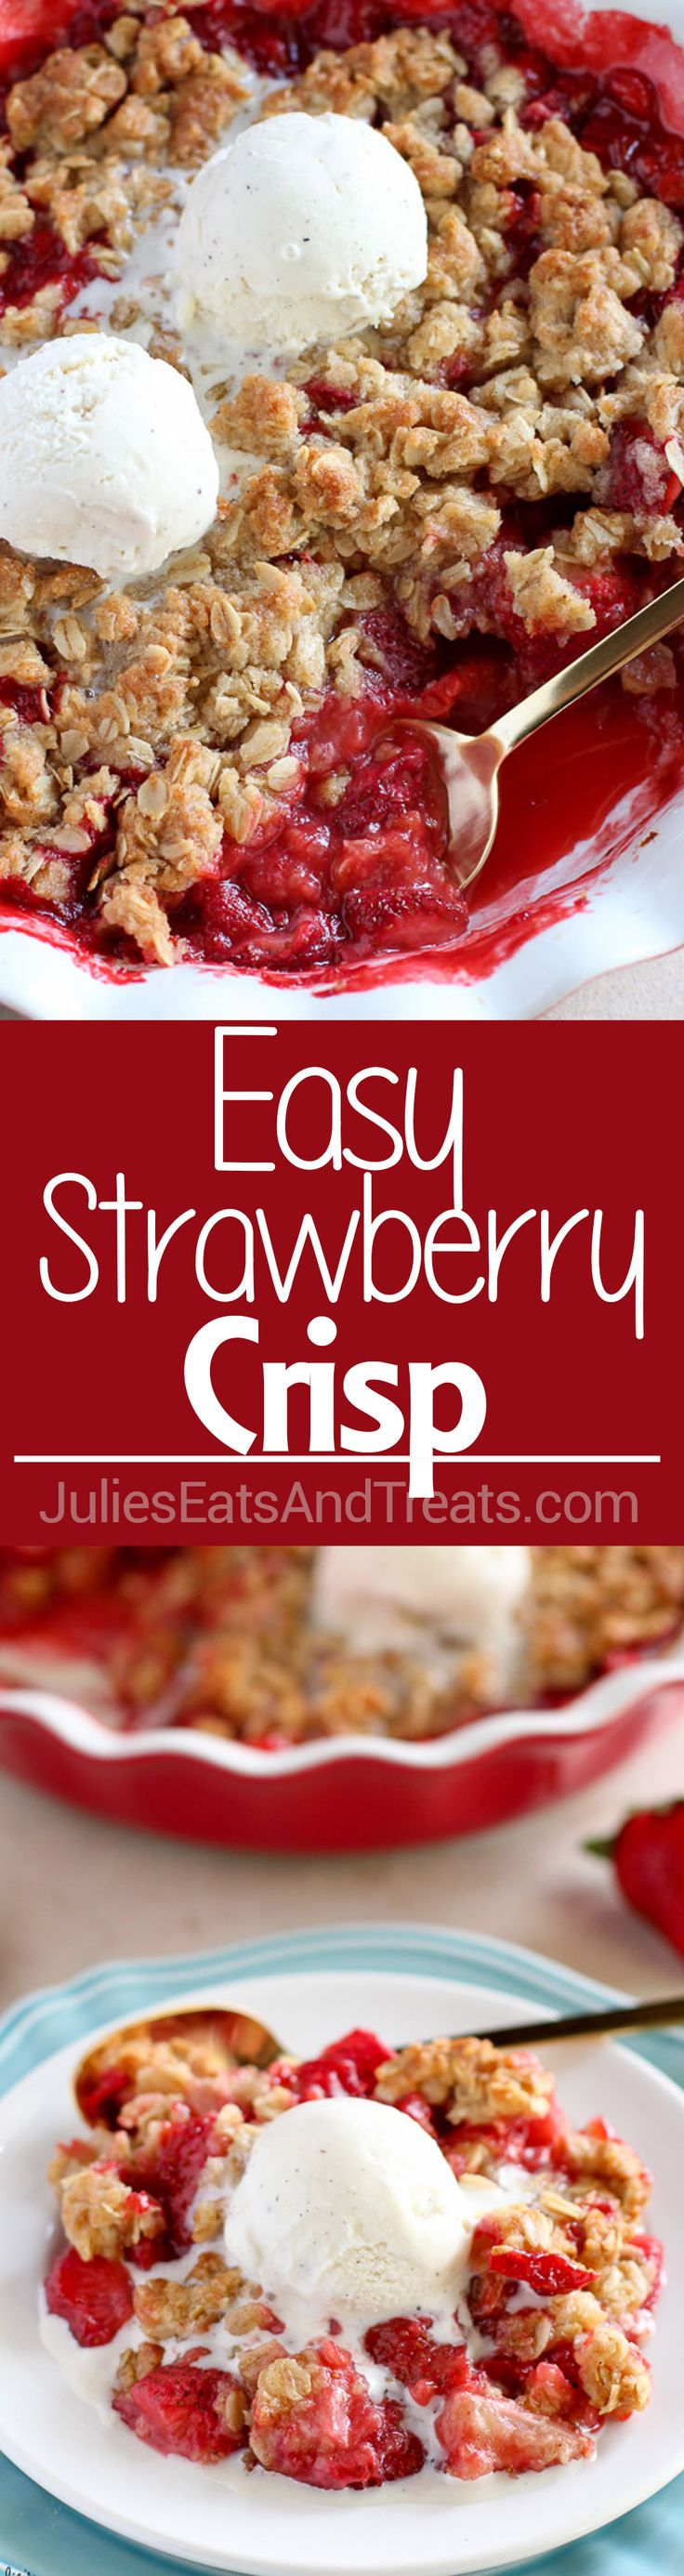 Easy Strawberry Crisp – Sweet and juicy strawberries topped with a buttery brown sugar oat crumble. This delicious fruit crisp dessert comes together in minutes and it is sure to be a crowd pleaser.